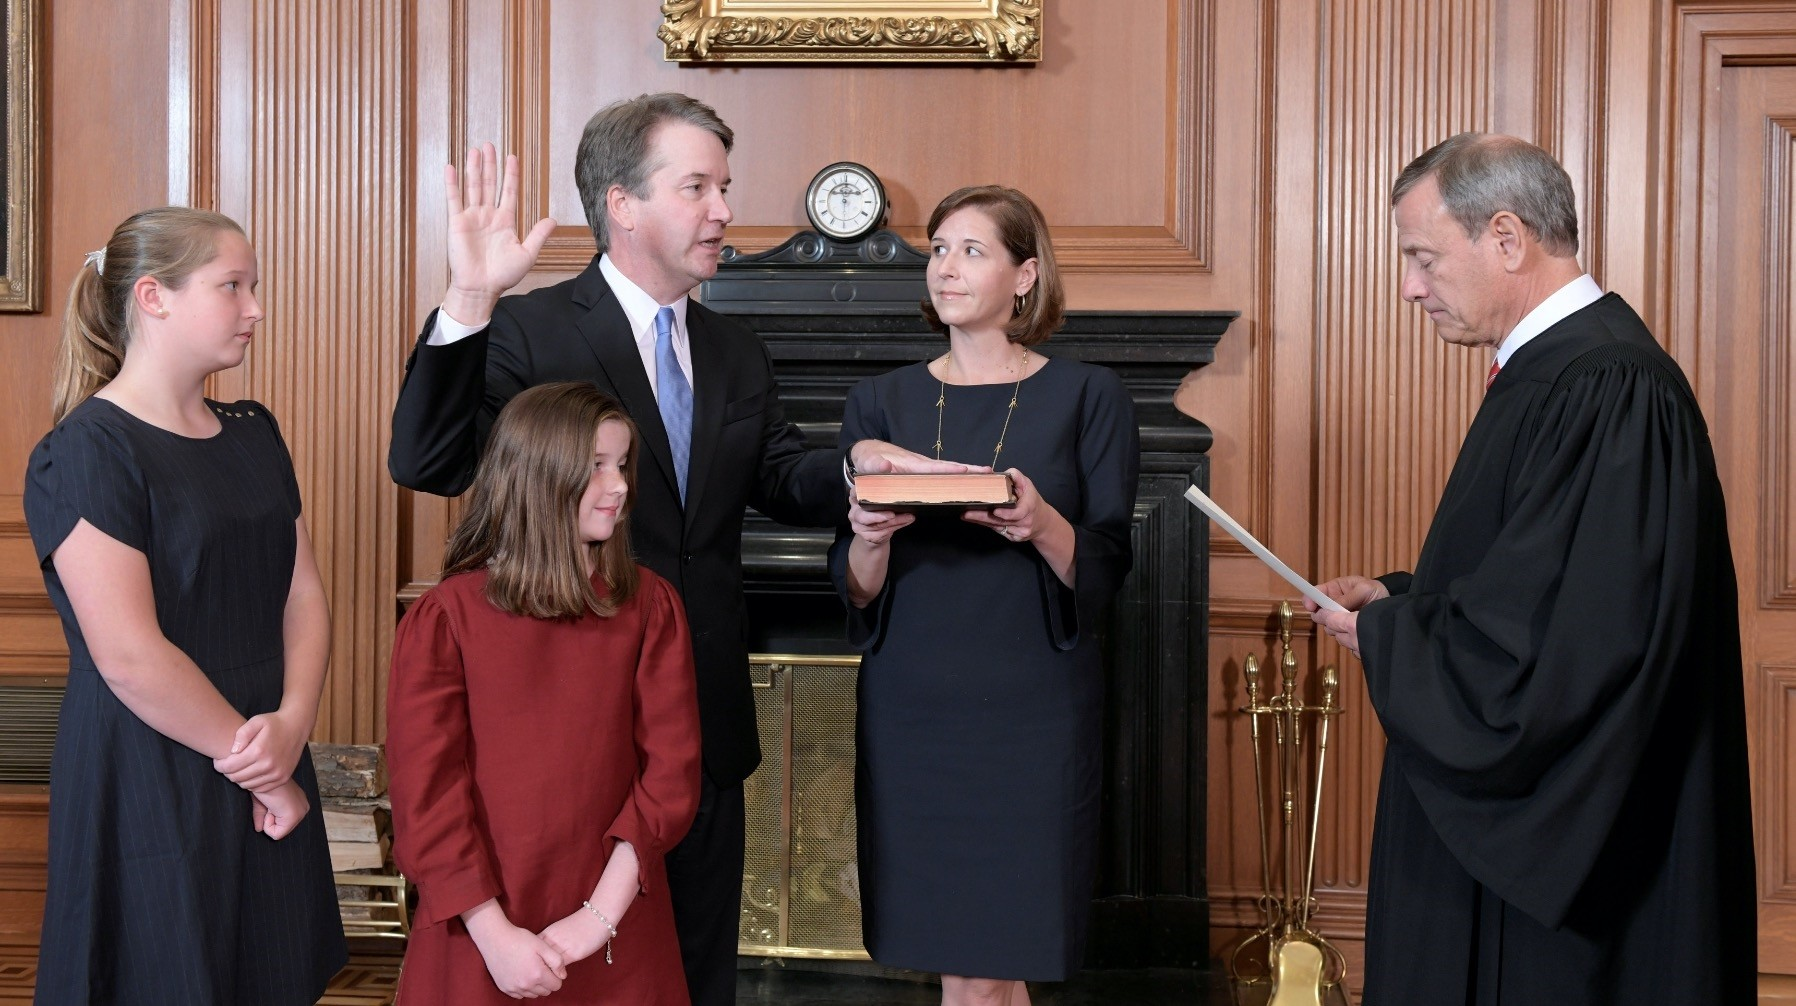 Judge Brett Kavanaugh is sworn in as an Associate Justice of the U.S. Supreme Court by Chief Justice John Roberts as Kavanaughu2019s family look on at the U.S. Supreme Court building, Washington, D.C. Oct. 6.